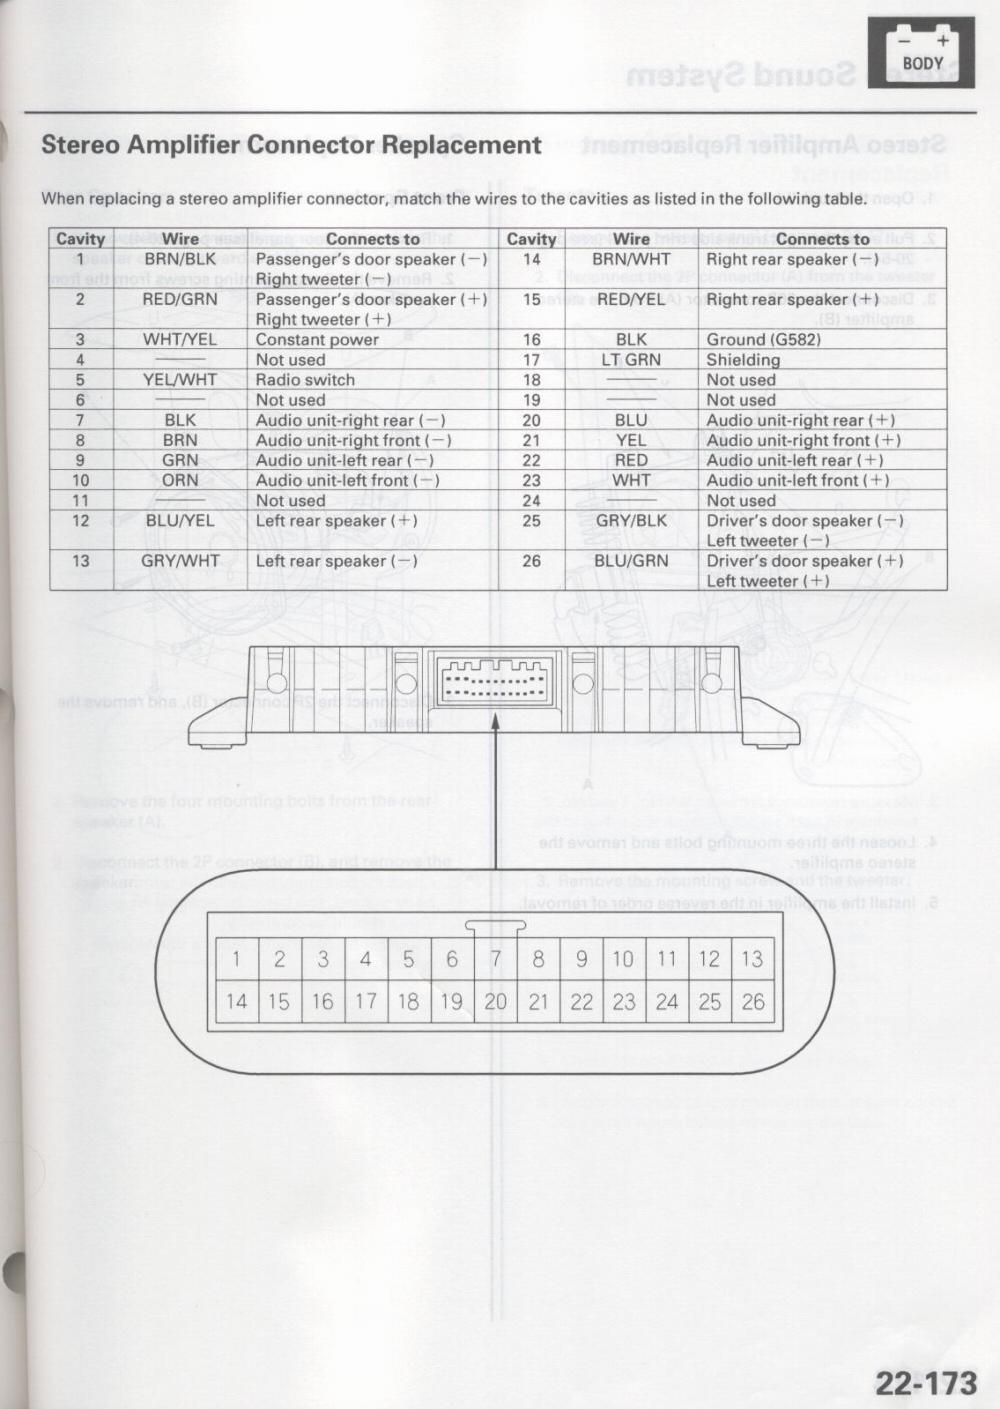 Index Of Images Chrysler Radio Wiring Harness Connectors Acura 2002 Tl Car Stereo Amplifier Diagram